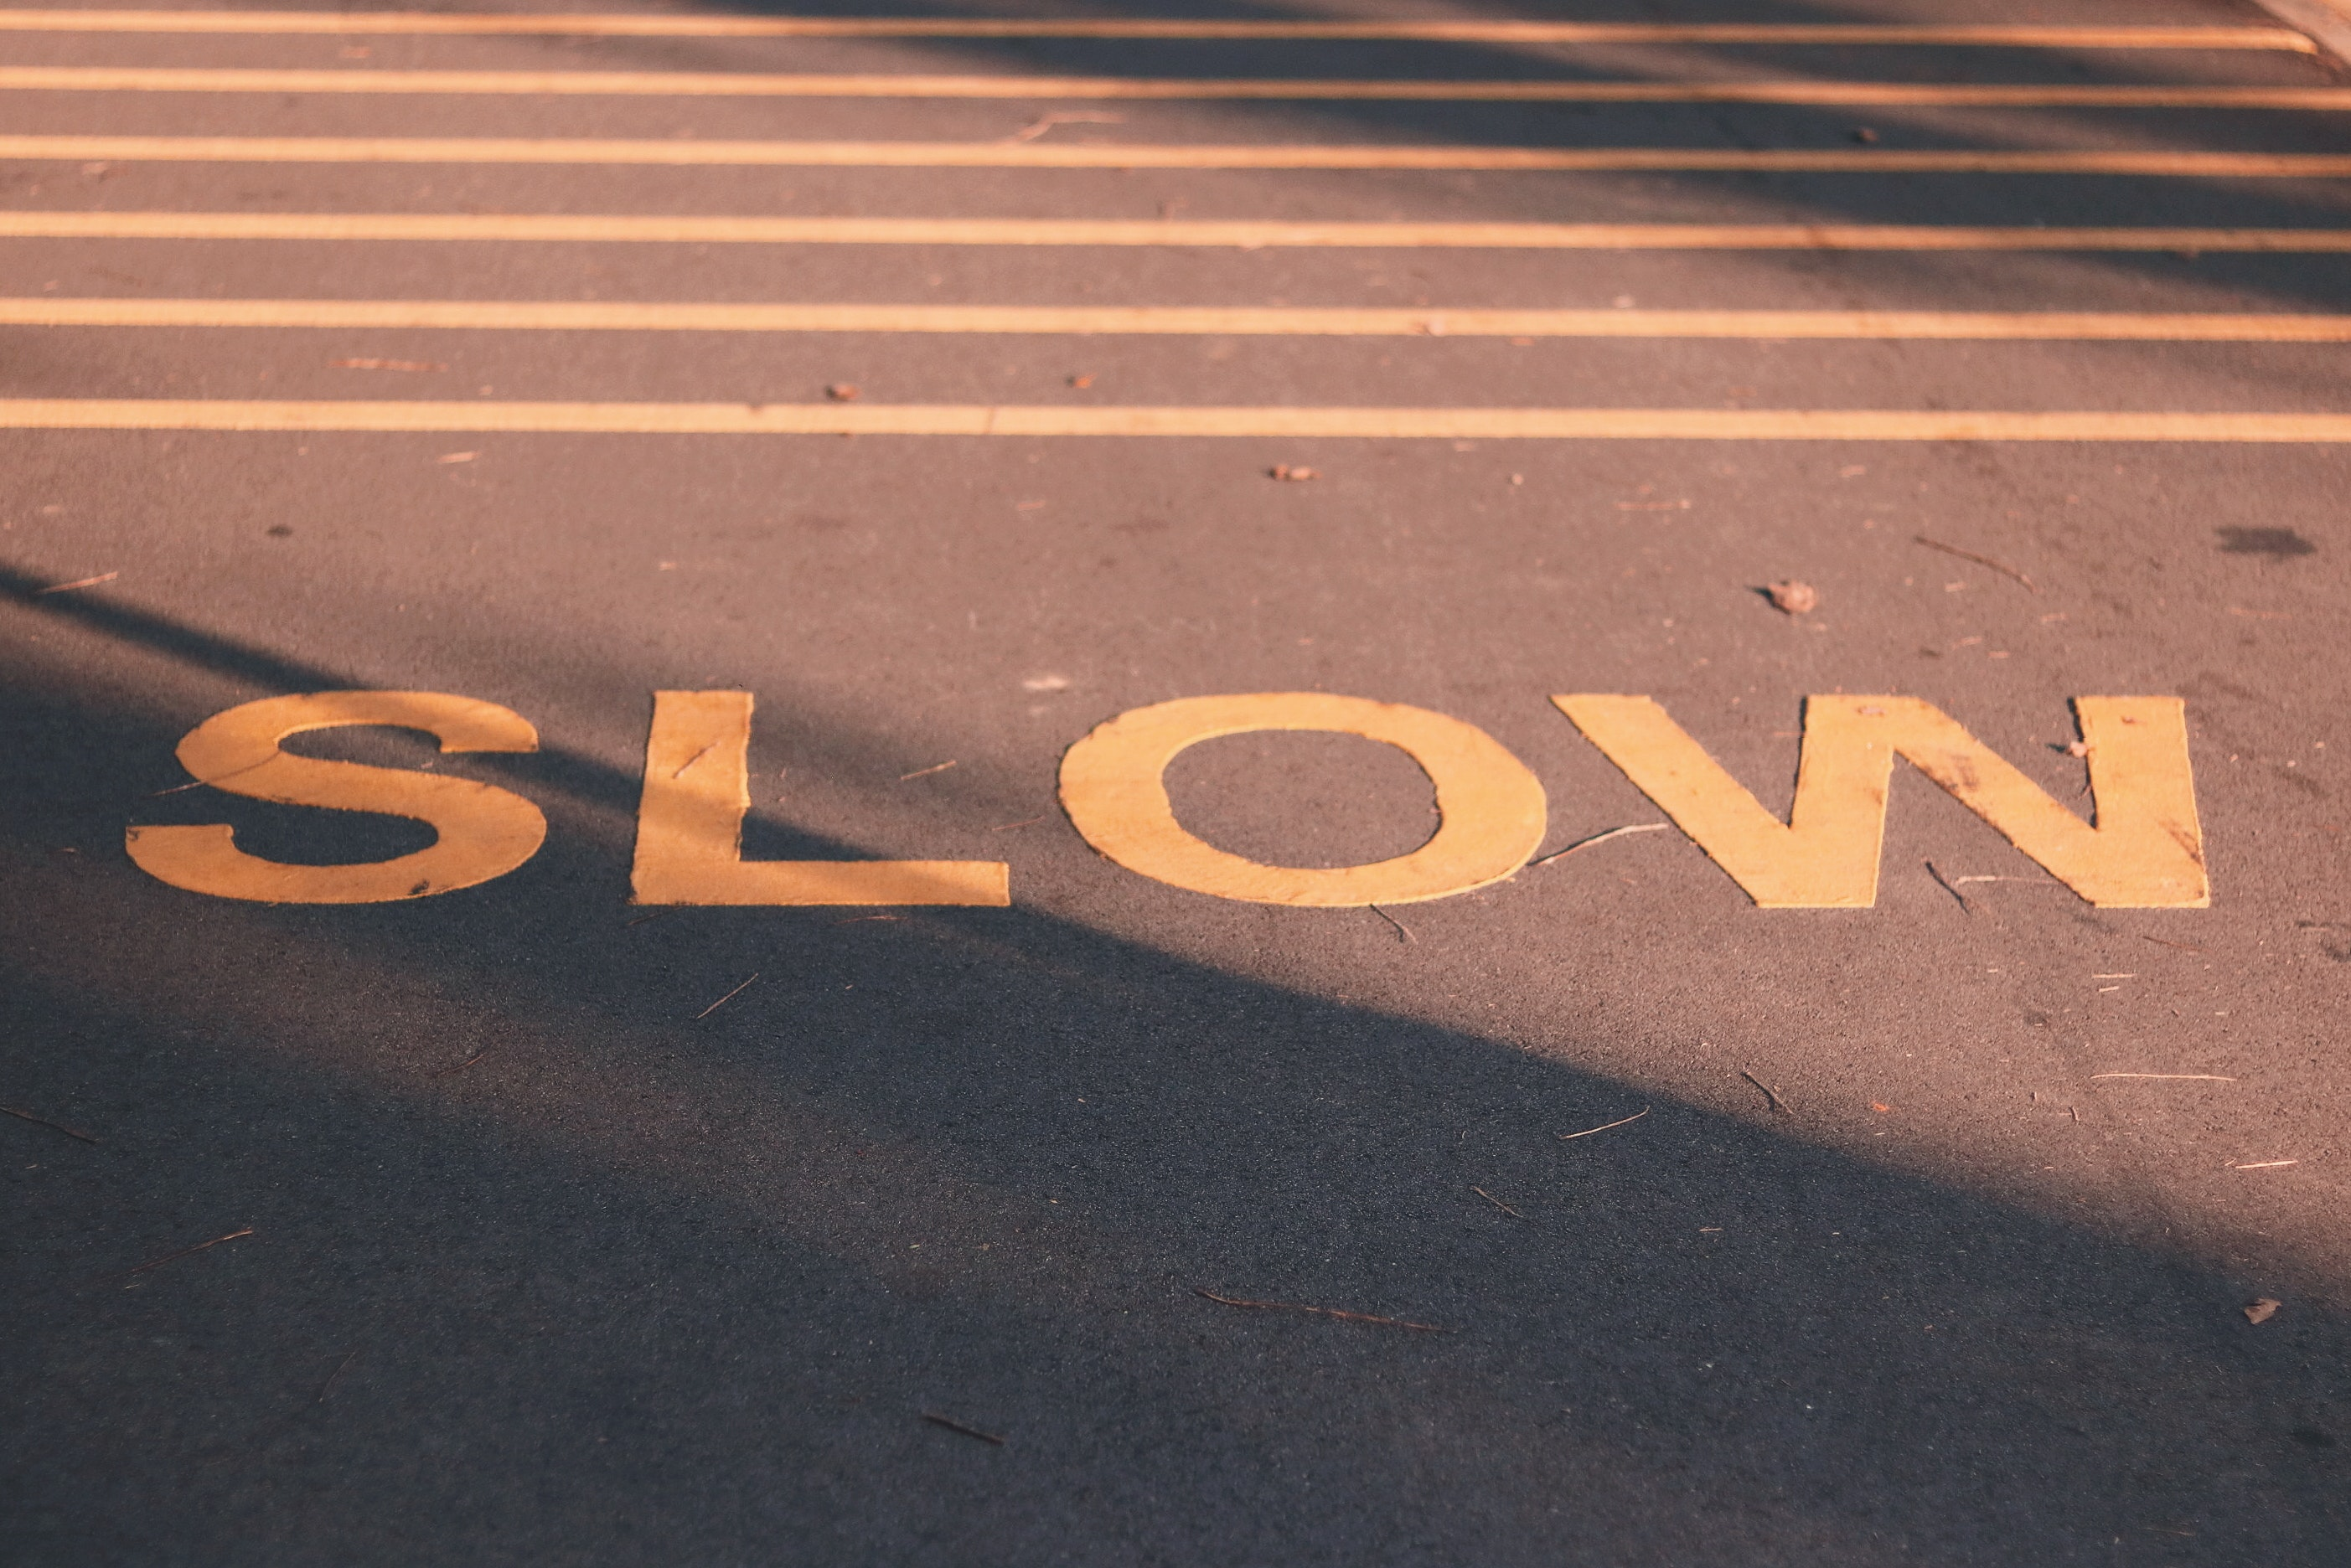 Slow signage on the asphalt road